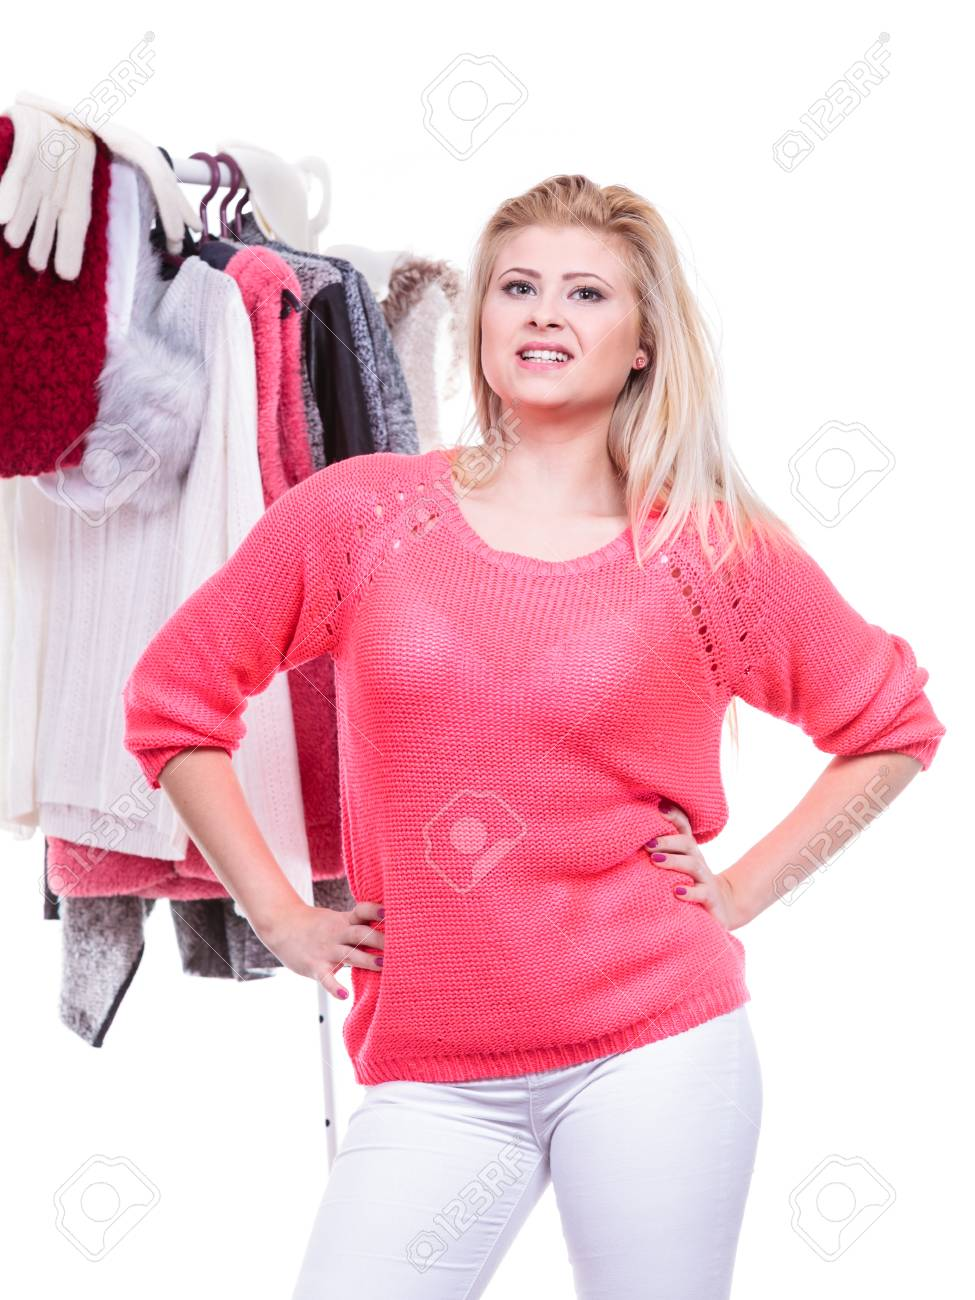 clothing fashion on closet wardrobe photo blonde girl her warm teen home rack choosing outfit young woman in indecision stock